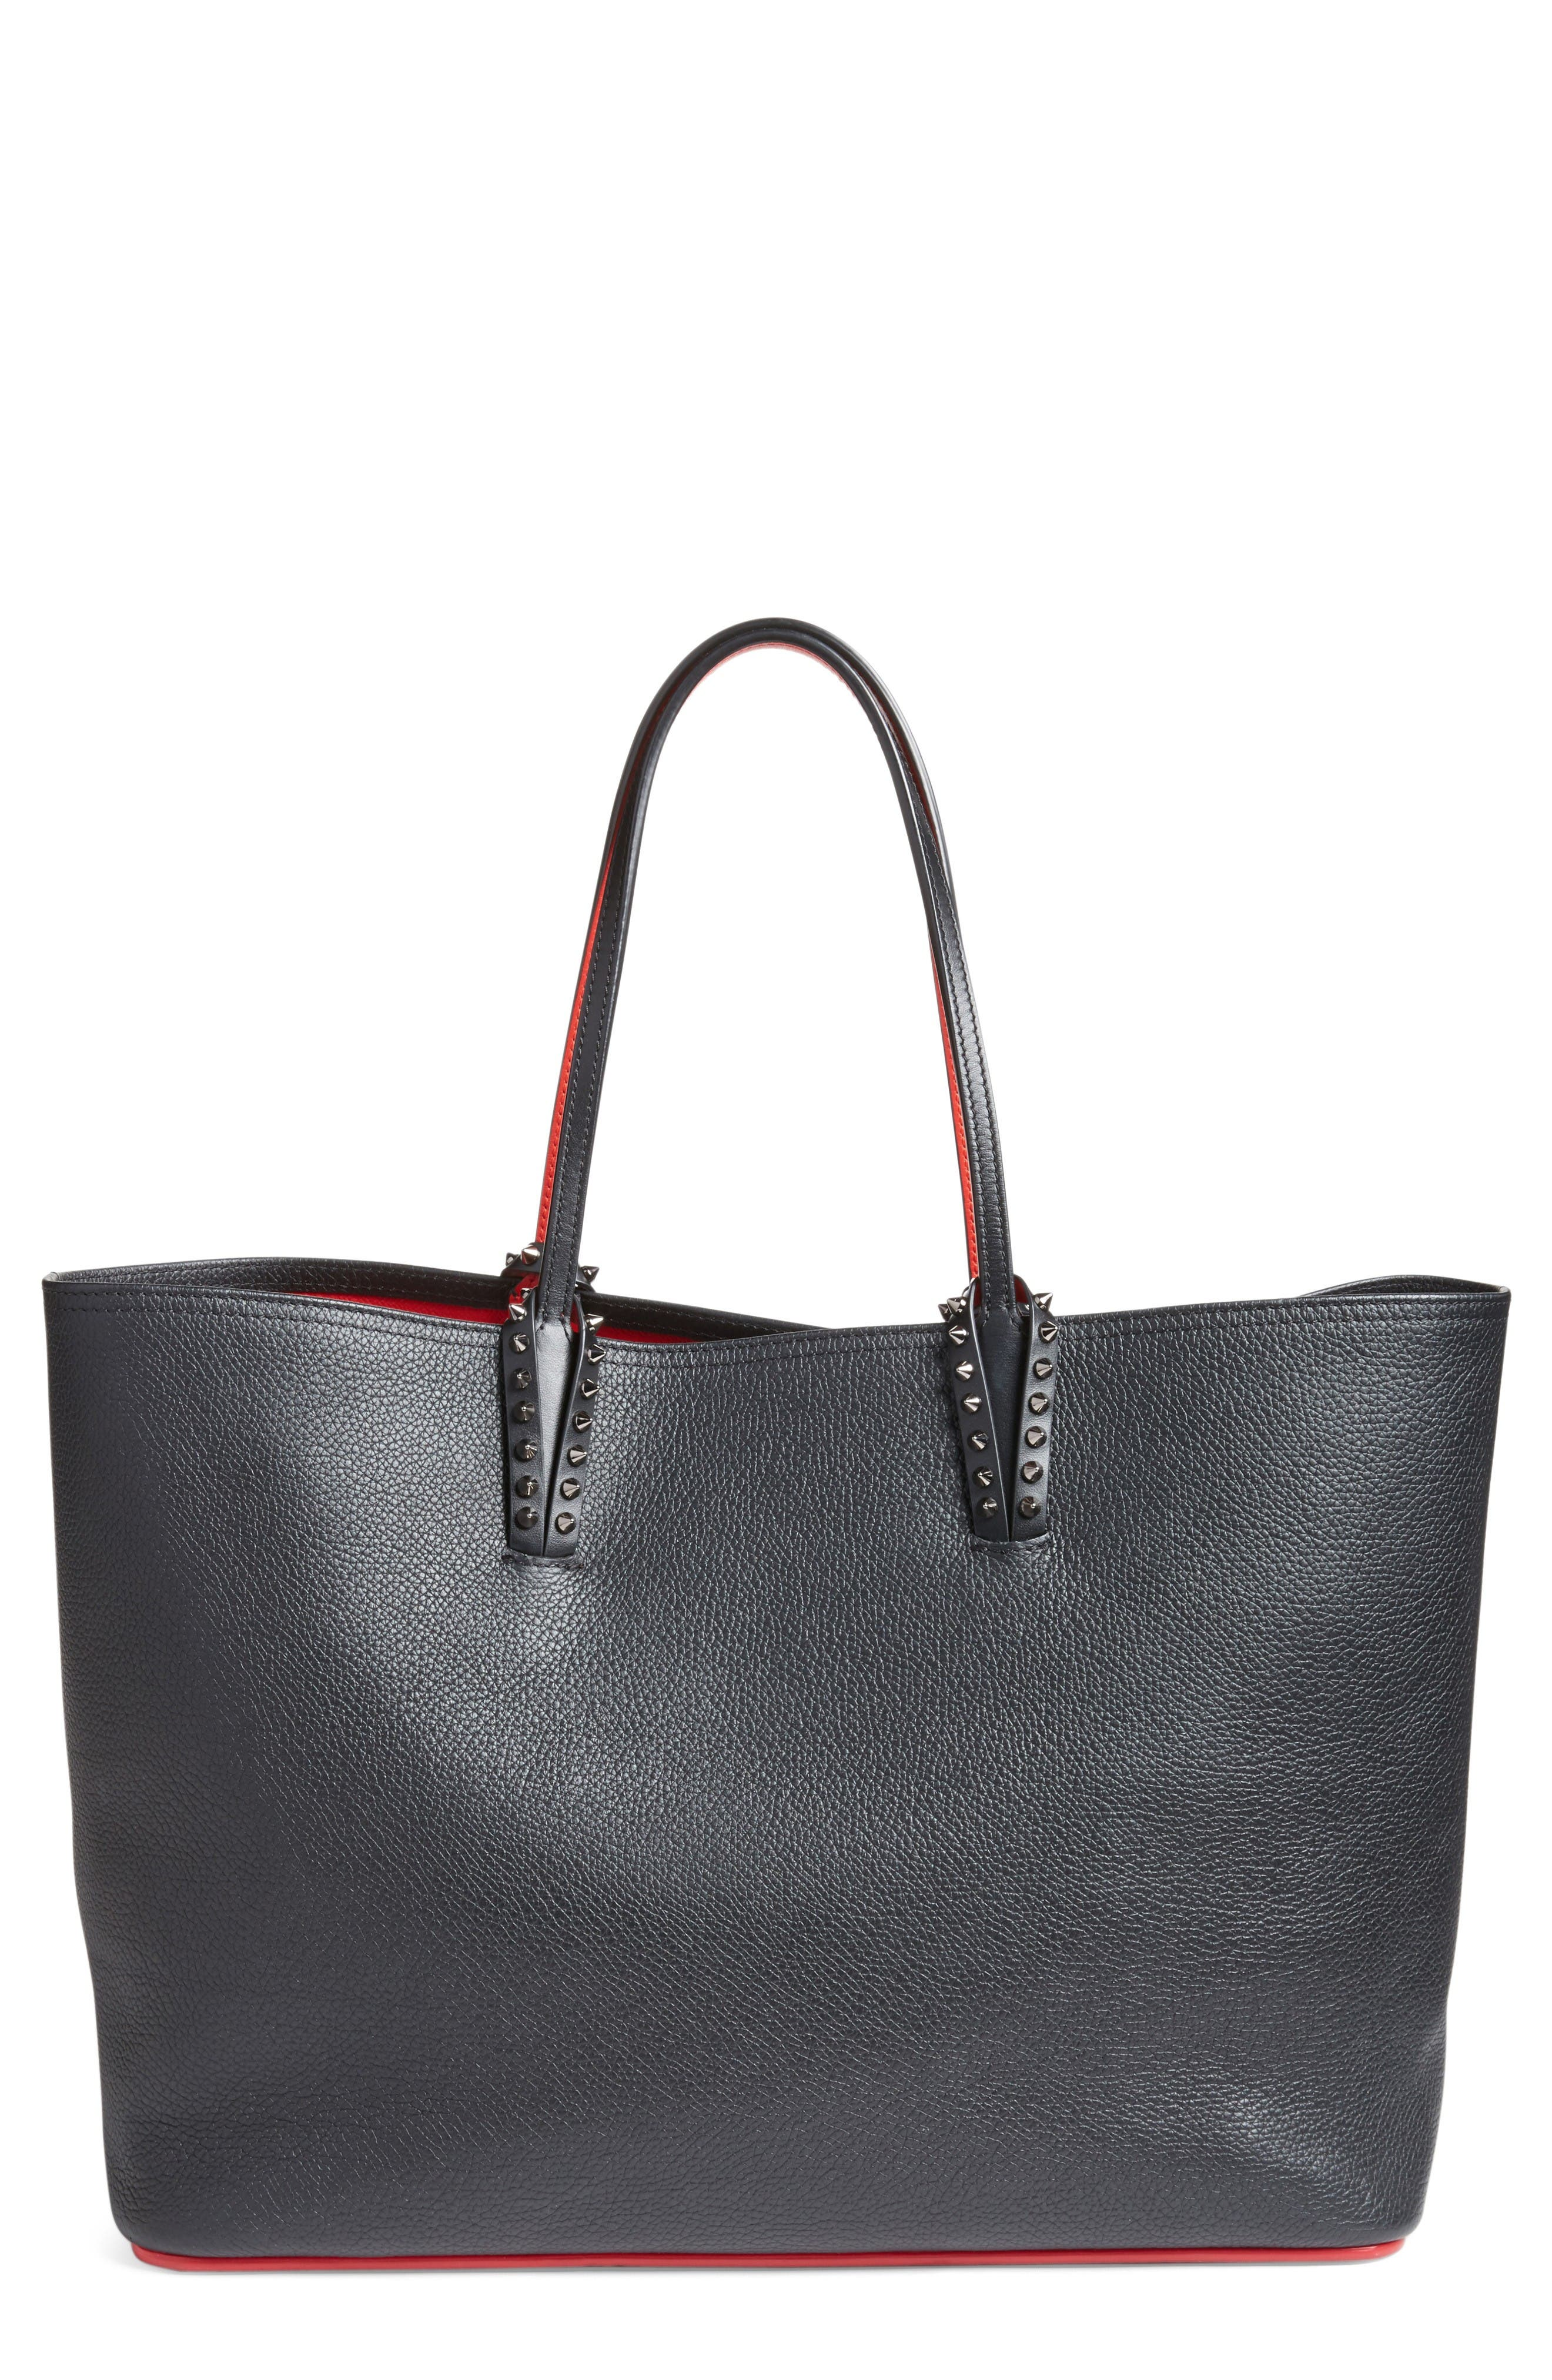 Cabata Calfskin Leather Tote,                         Main,                         color, Black/Black